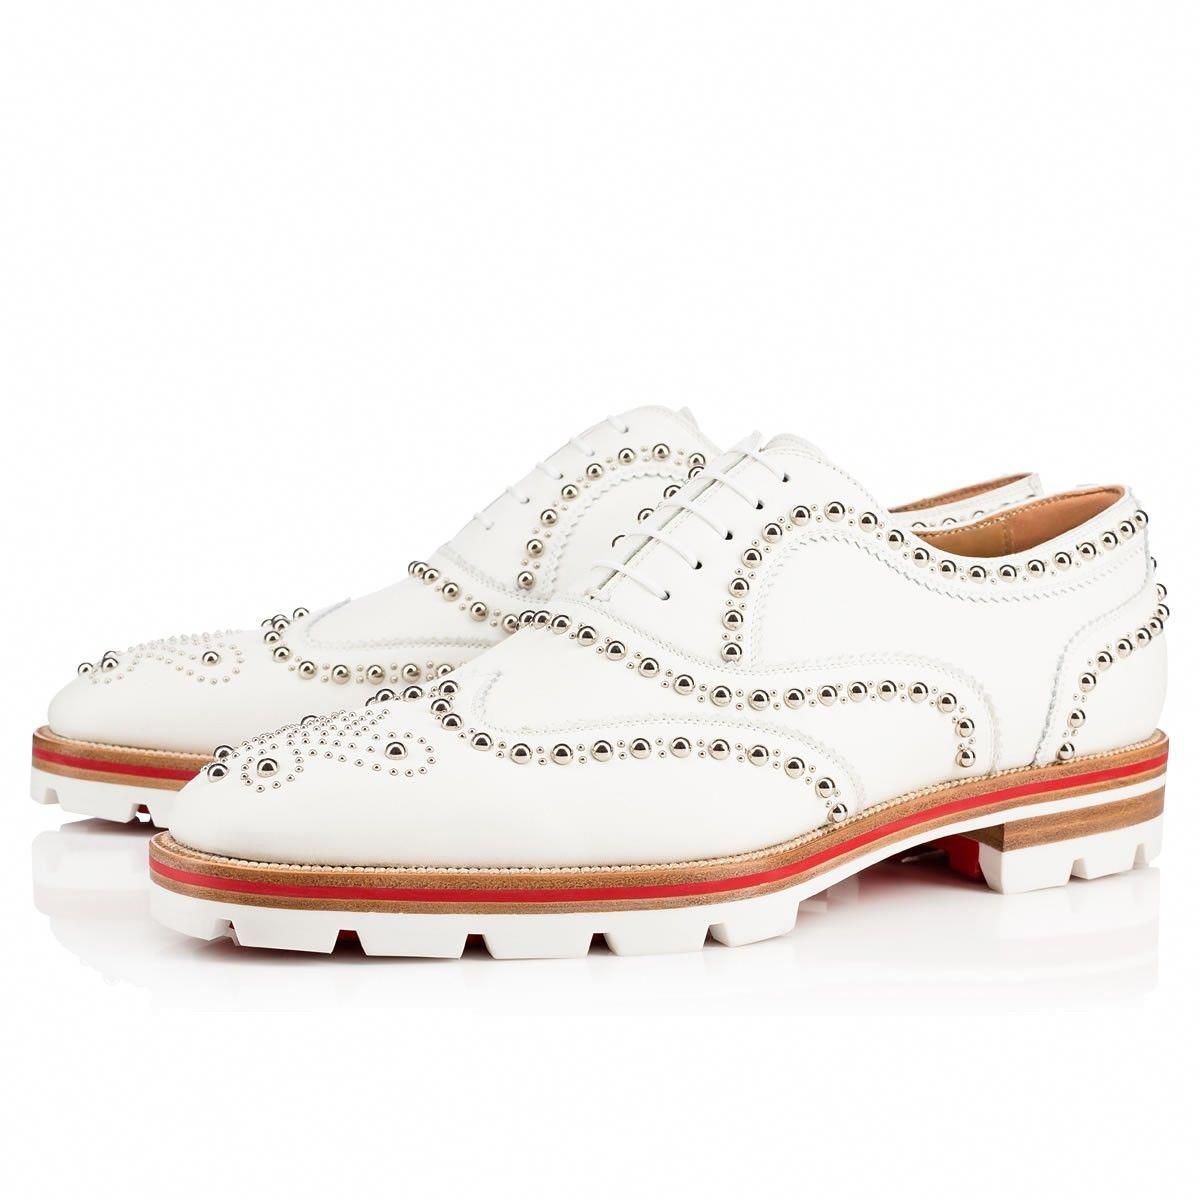 1c9ed57e10de CHRISTIAN LOUBOUTIN Crapamale Flat Latte Silver Leather - Men Shoes - Christian  Louboutin.  christianlouboutin  shoes